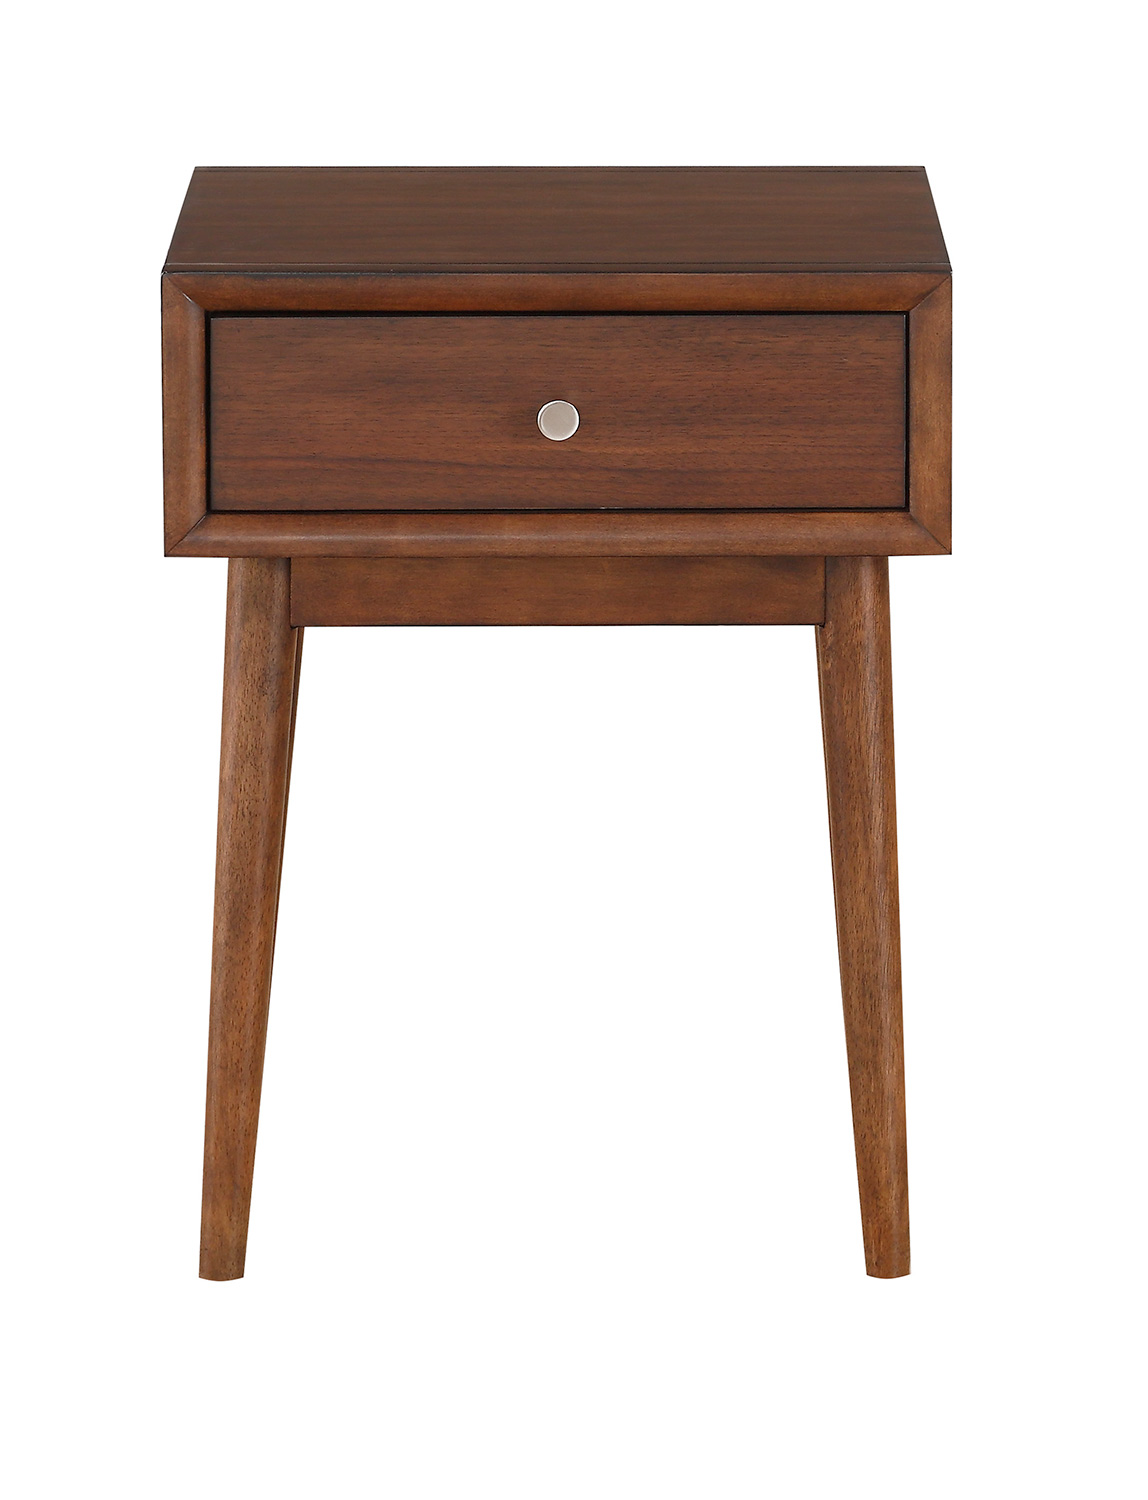 Homelegance Frolic End Table with Functional Drawer - Brown